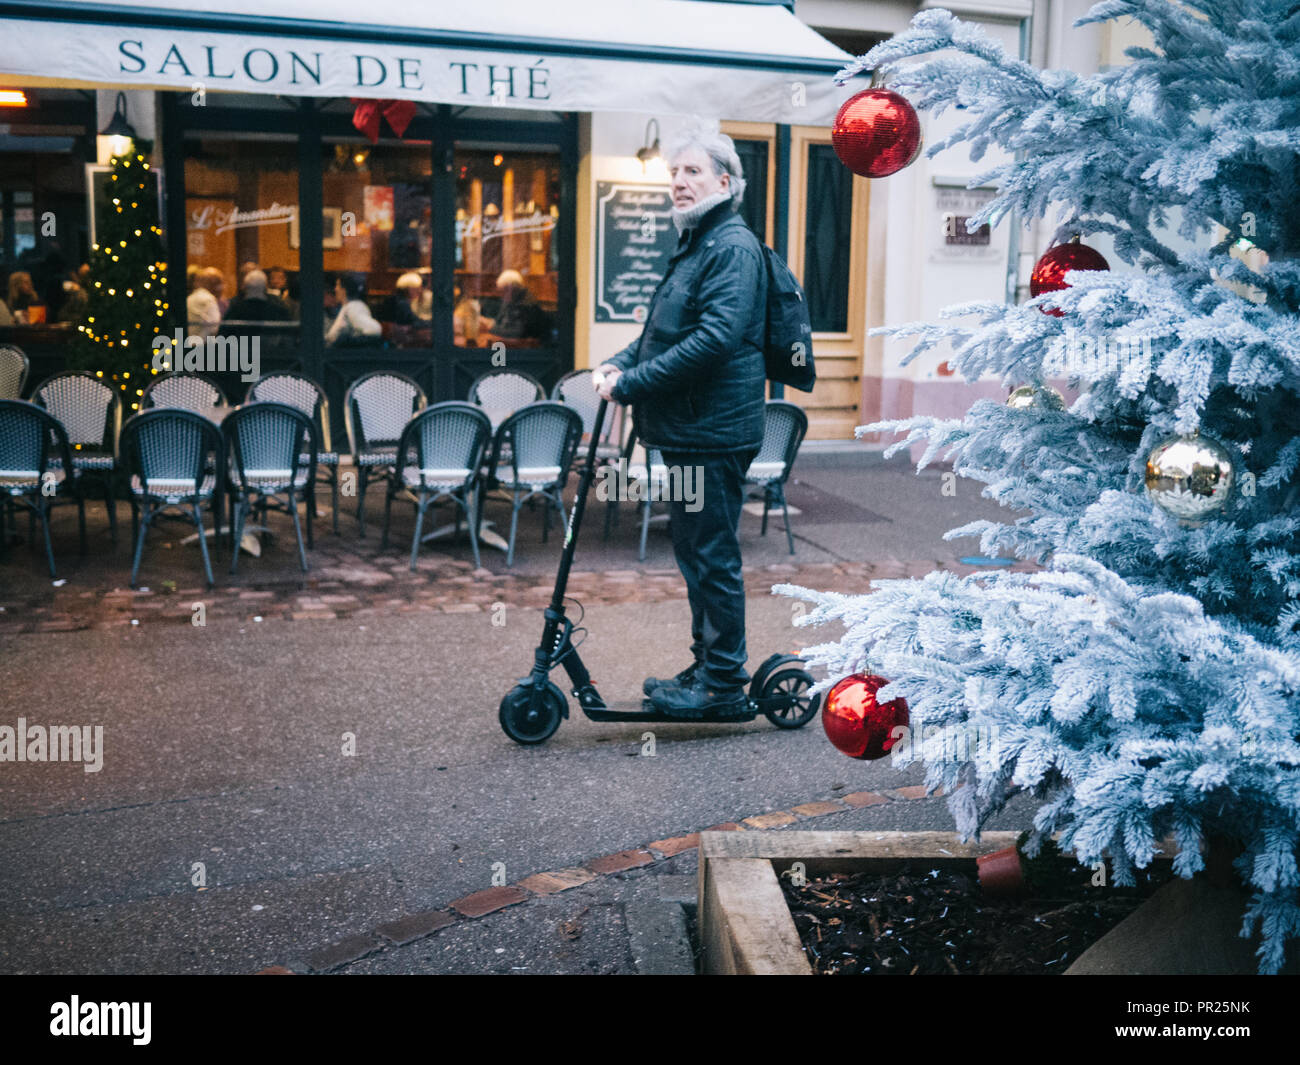 A man goes in his scooter at Christmas near a bar which sells tea with some chairs outside. There's a Christmas tree with balls in the foreground - Stock Image